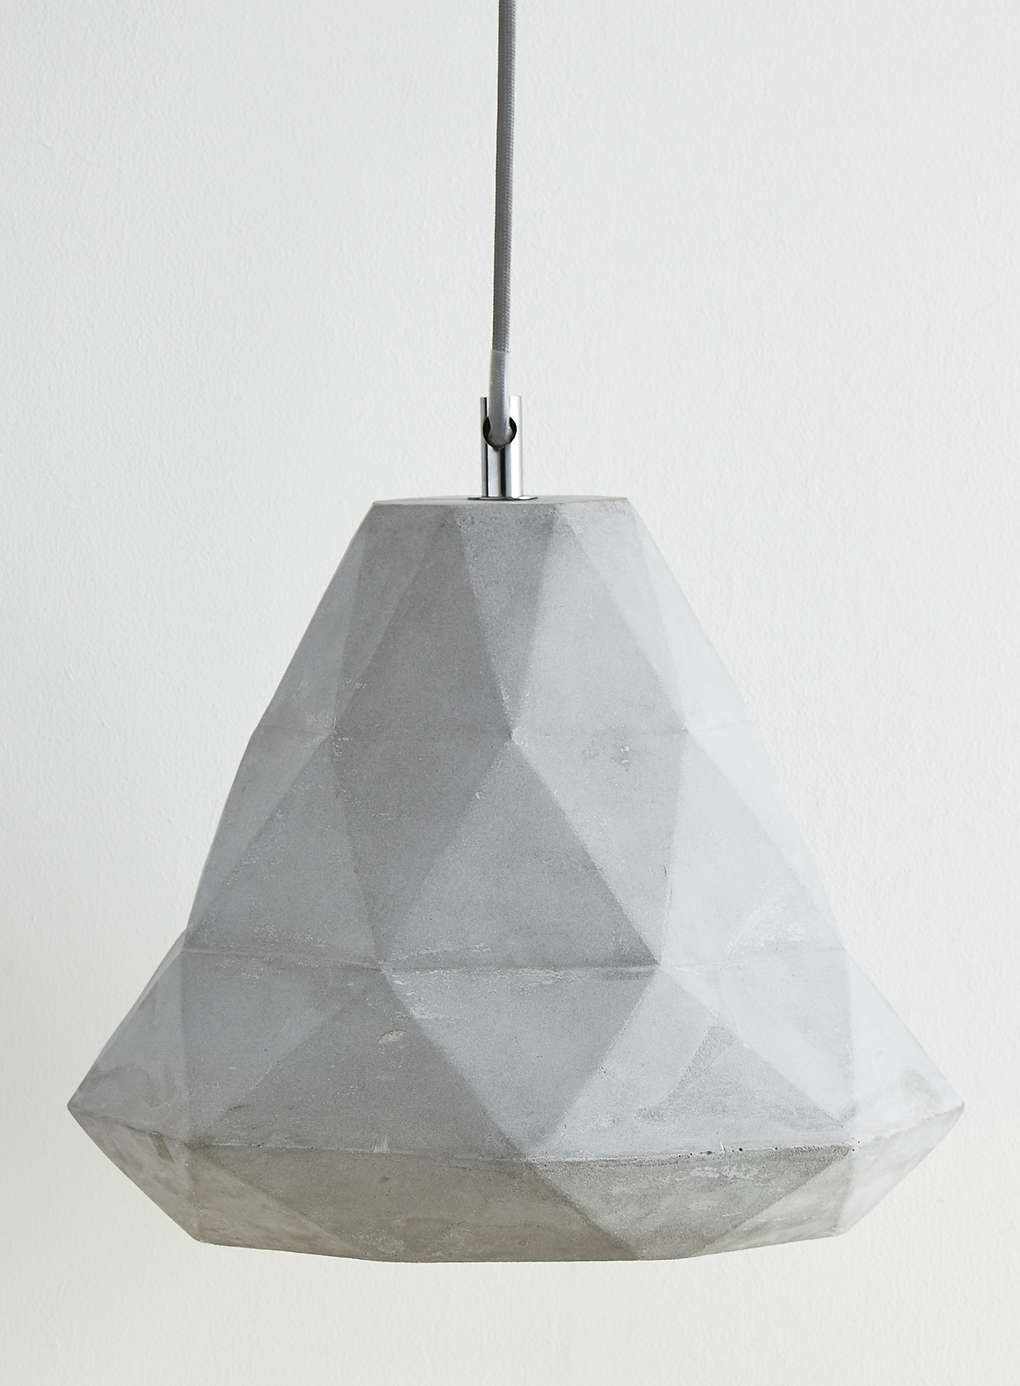 Grey aero pendant light ceiling lights home lighting grey aero pendant light ceiling lights home lighting furniture bhs mozeypictures Image collections